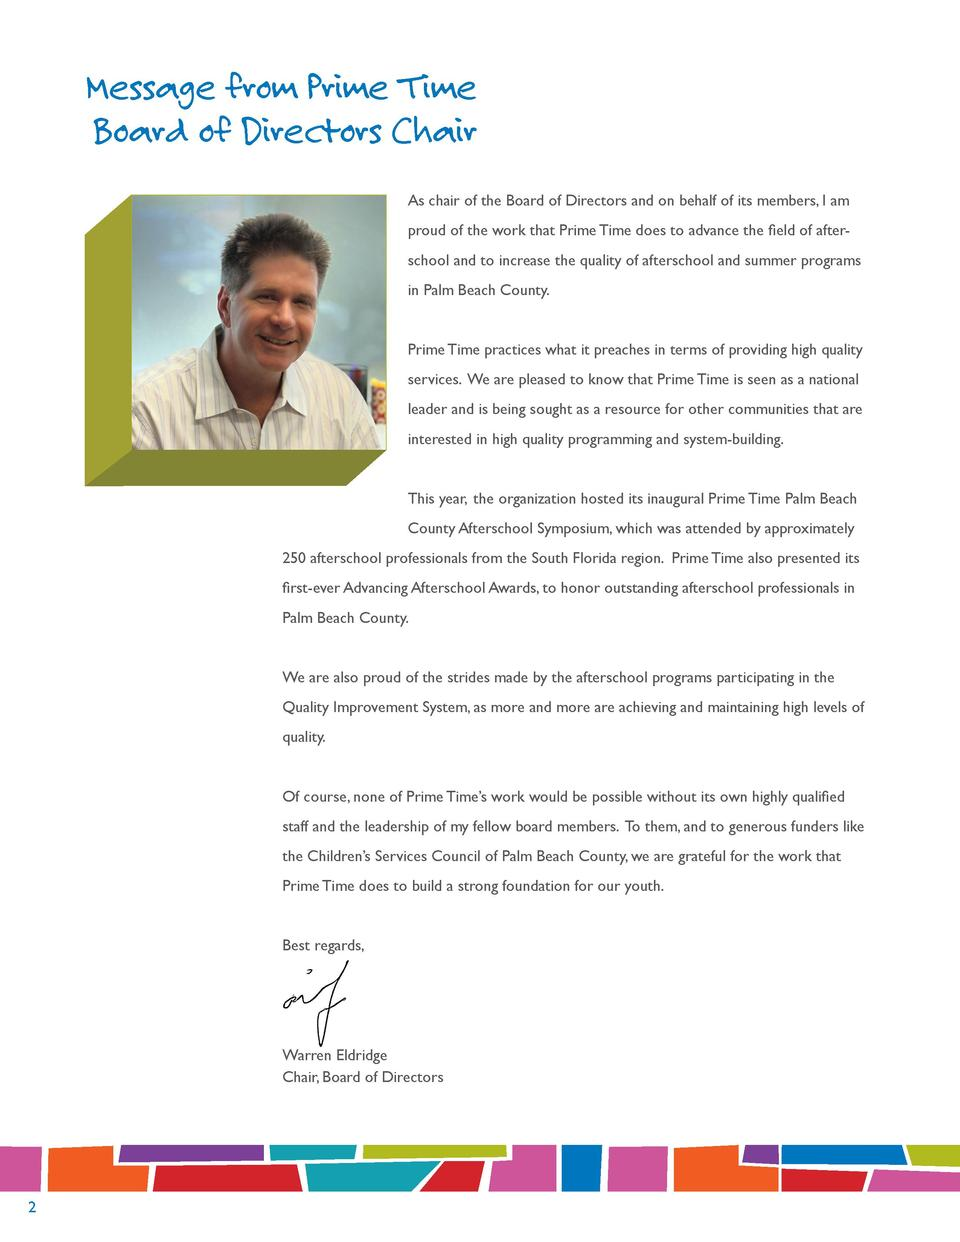 Message from Prime Time Board of Directors Chair As chair of the Board of Directors and on behalf of its members, I am pro...